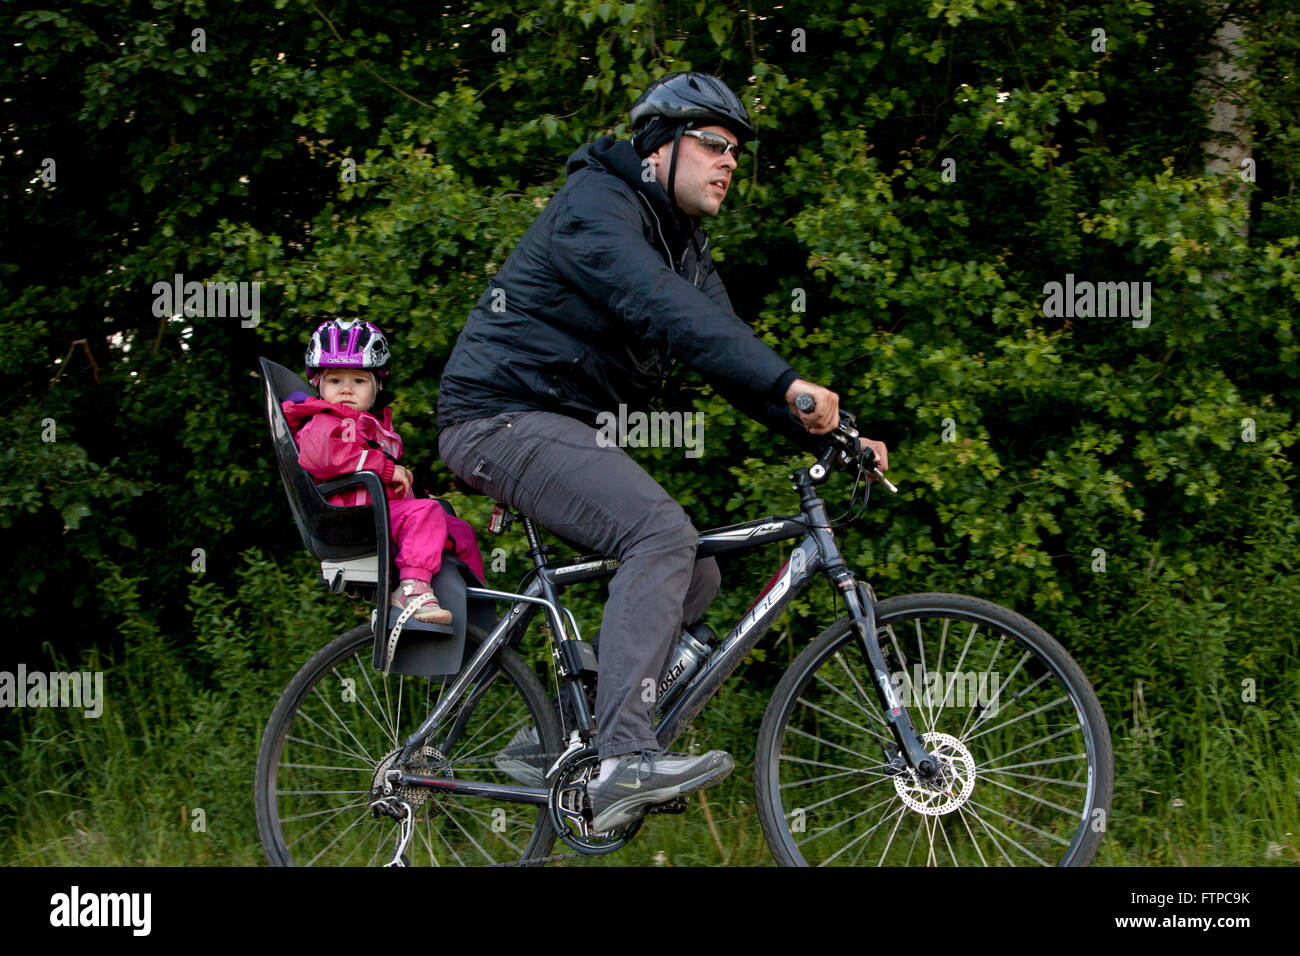 father on bicycle with his daughter in a child bike seat on a trip - Stock Image